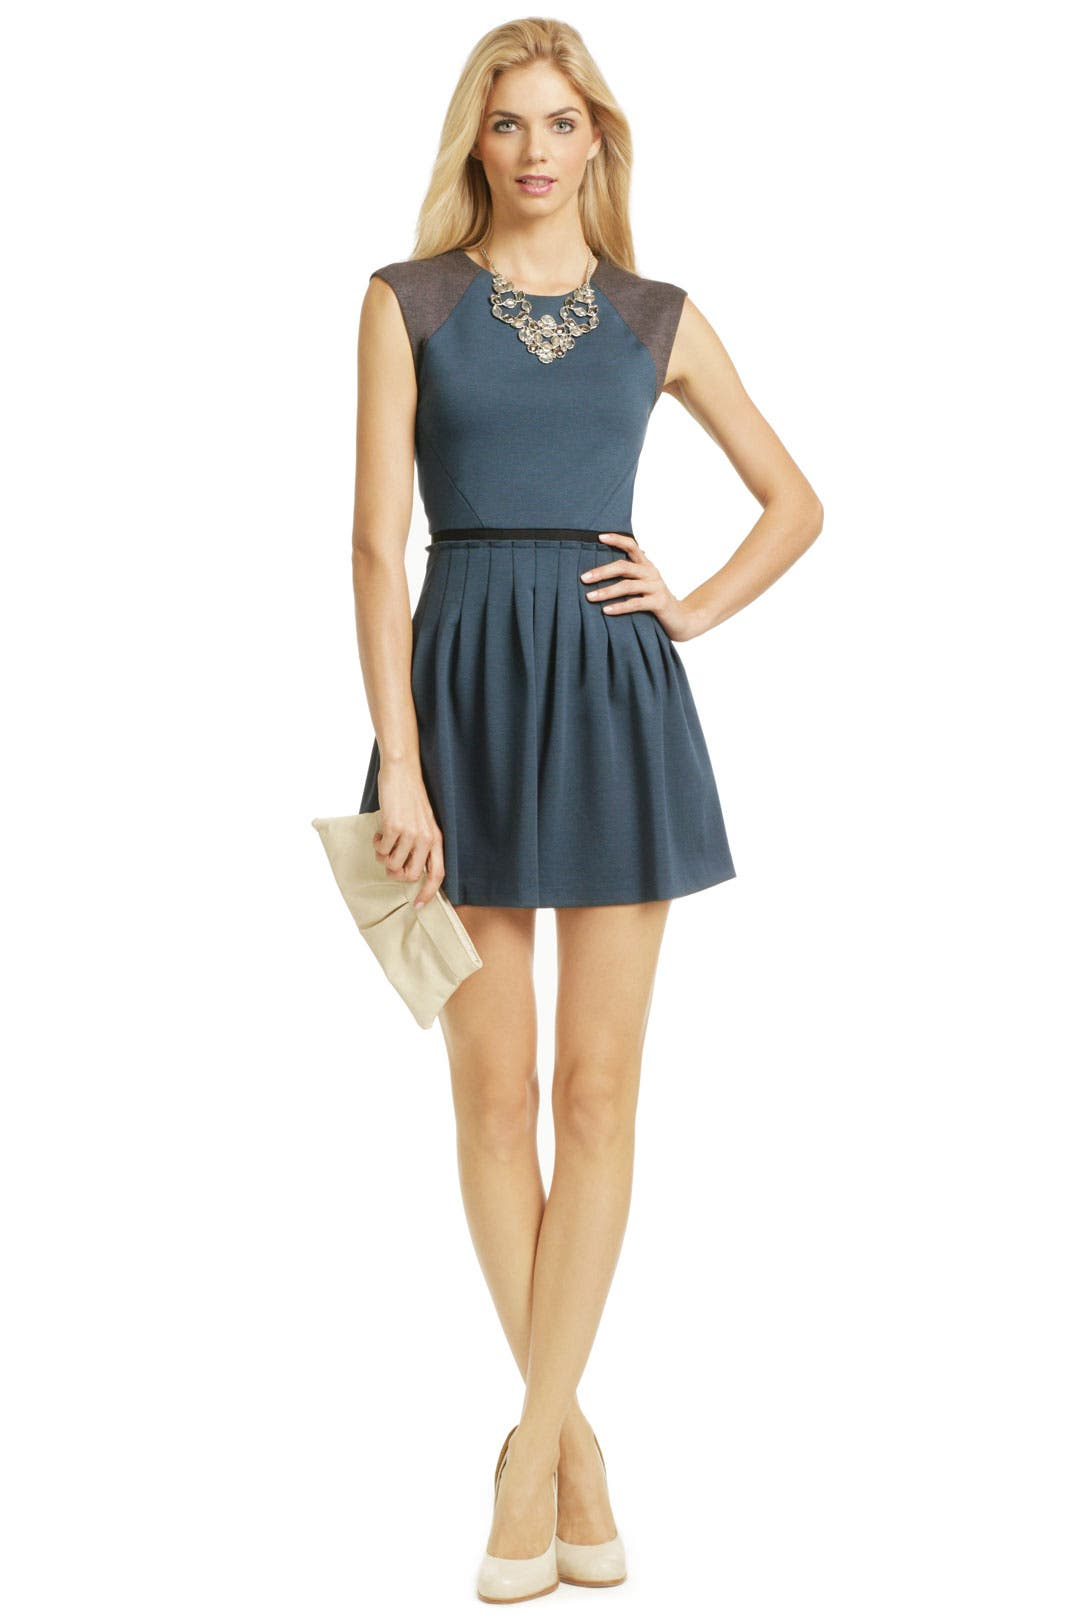 Work Hard Play Hard Dress by Rebecca Taylor